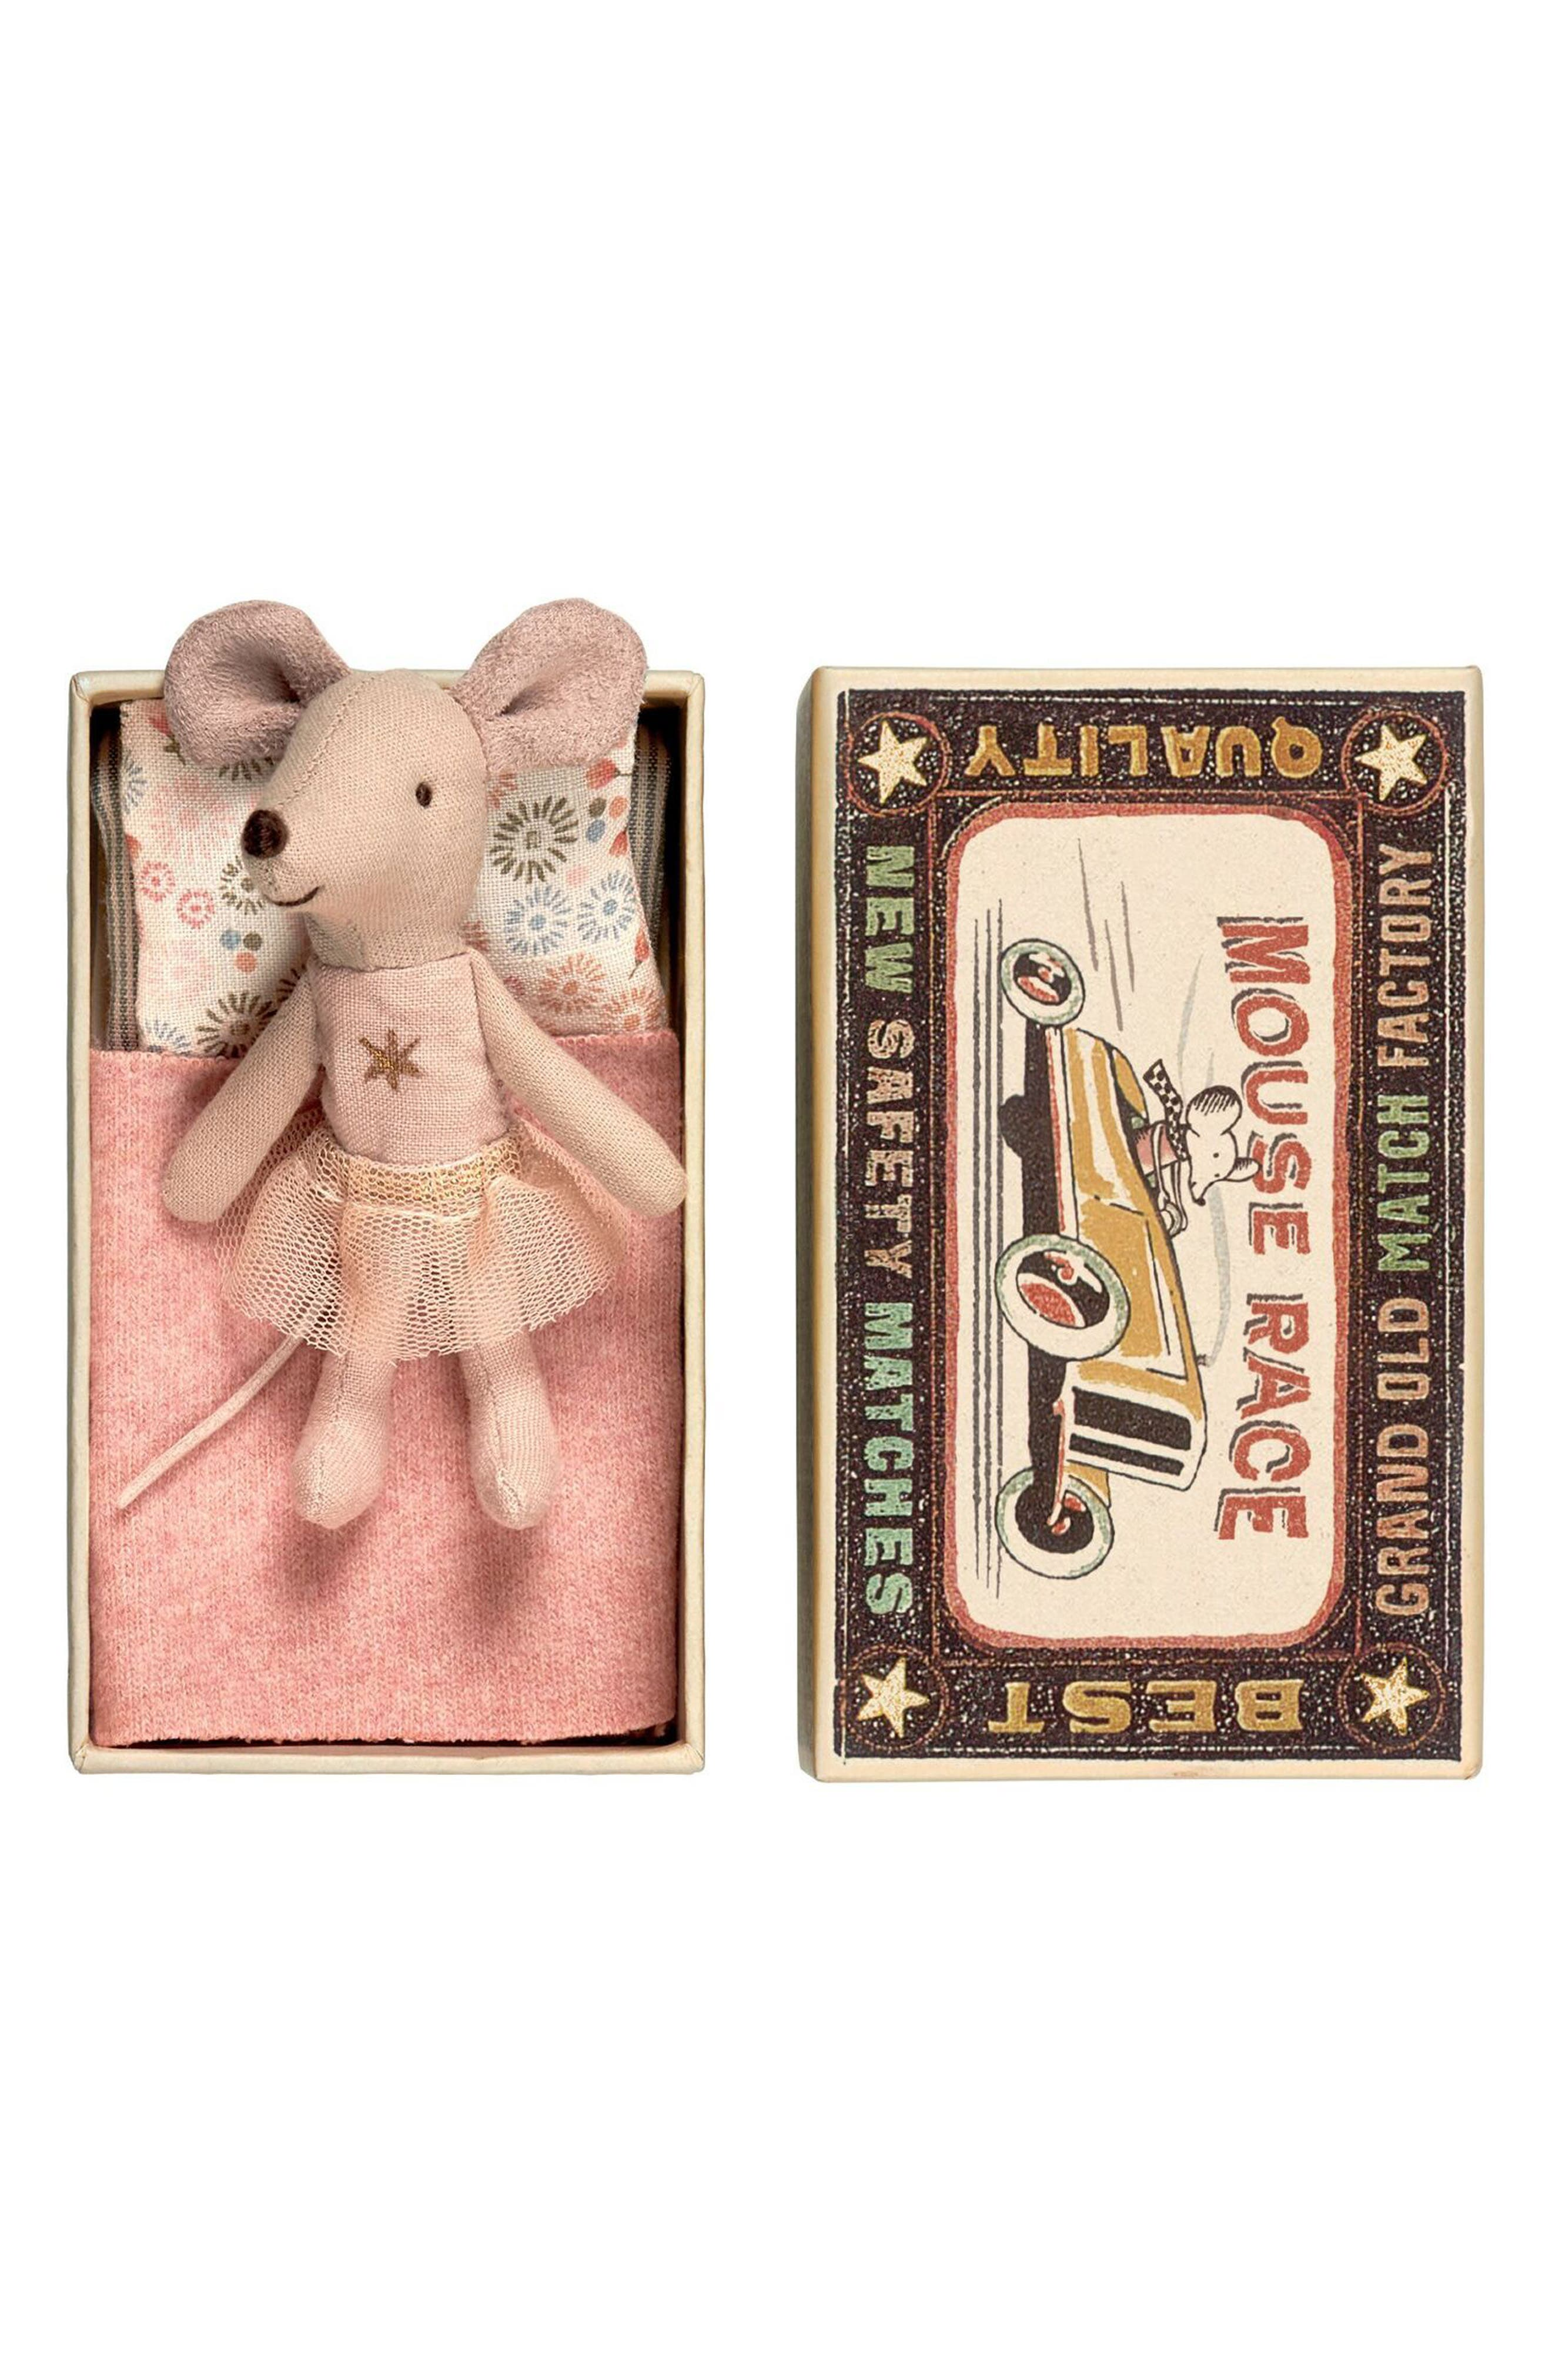 Little Sister Star Toy Mouse in a Box,                             Main thumbnail 1, color,                             650